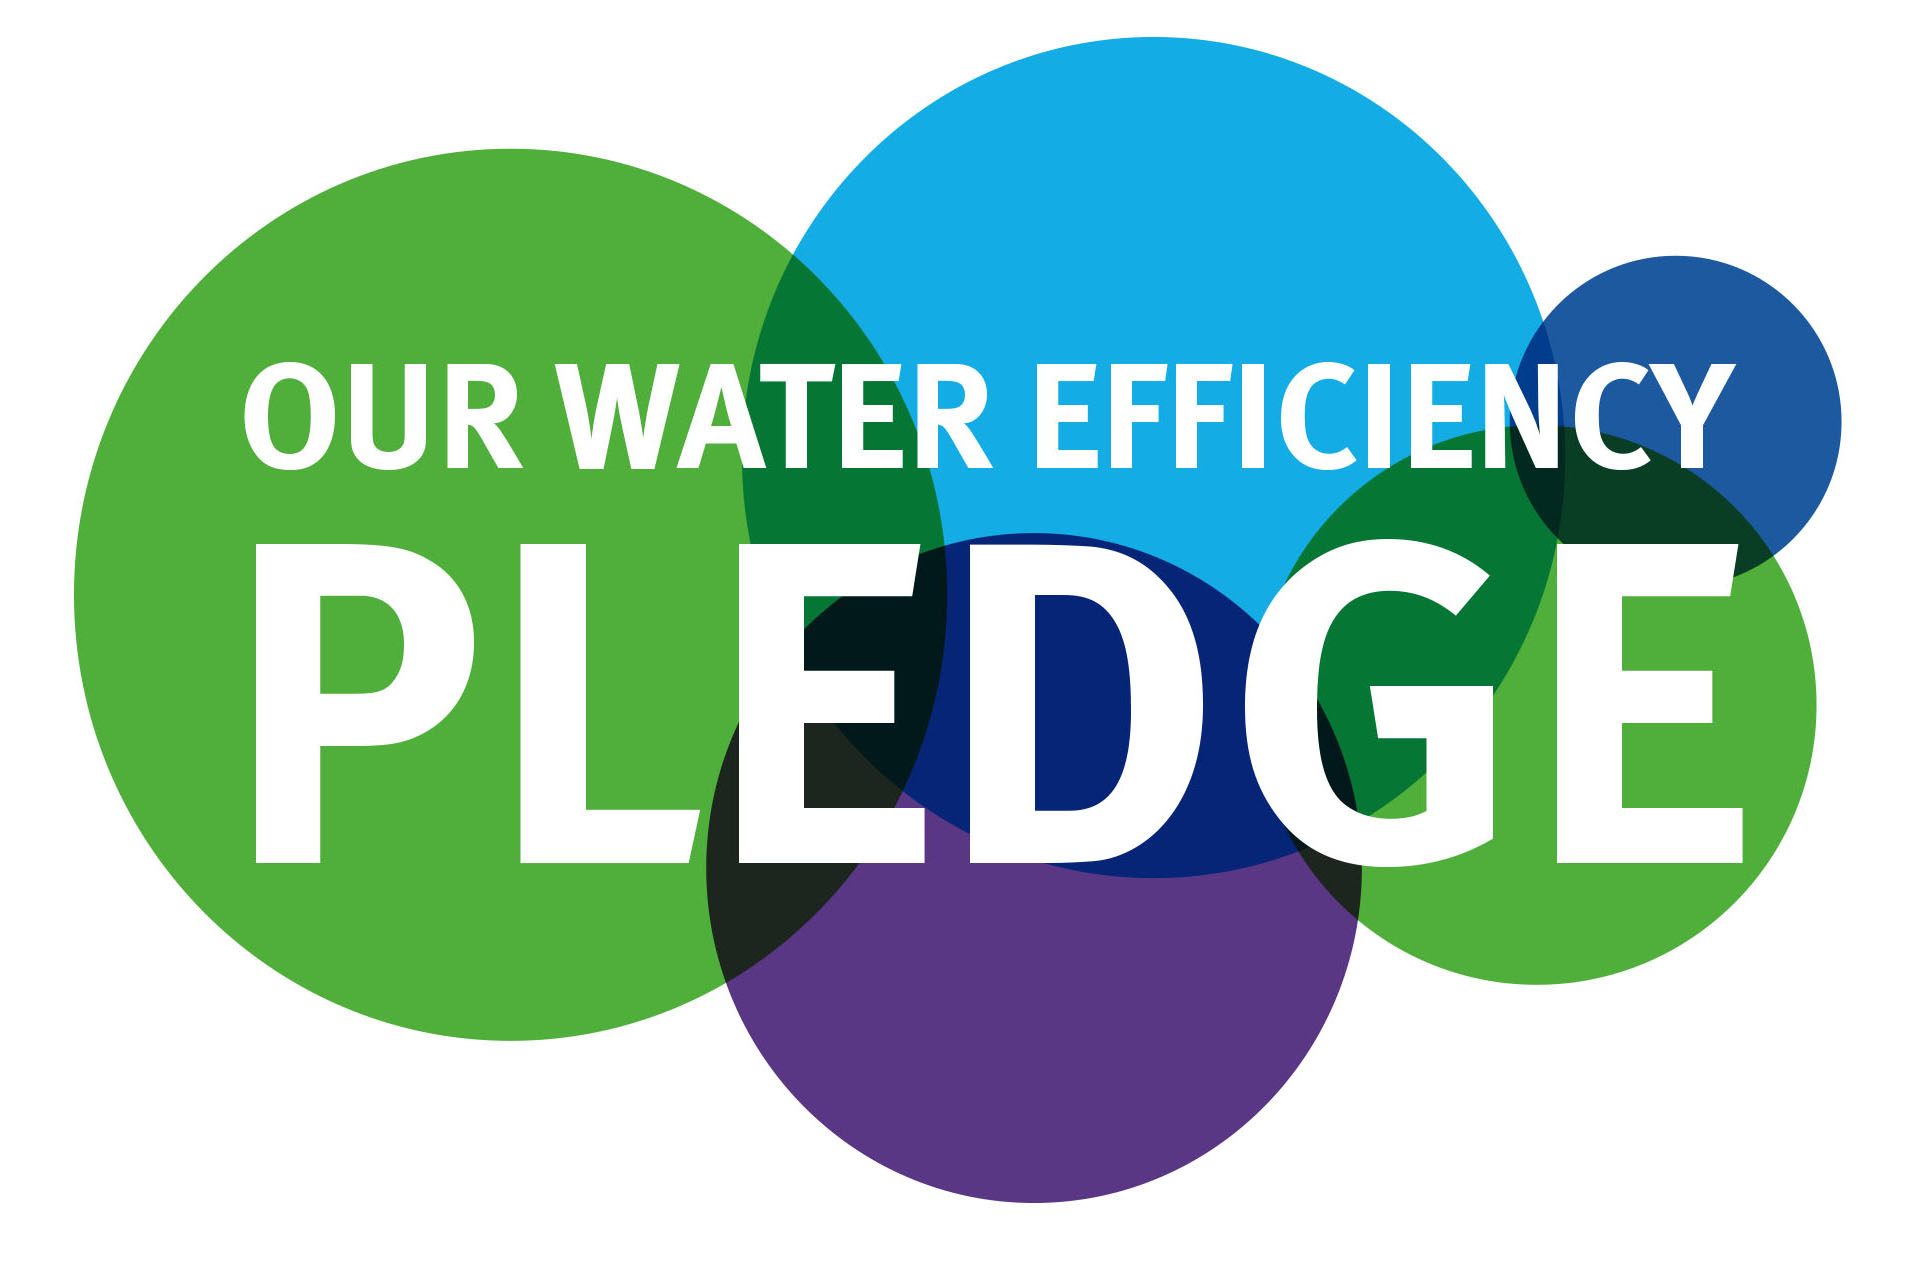 We realise the importance of saving water for our customers and the environment.